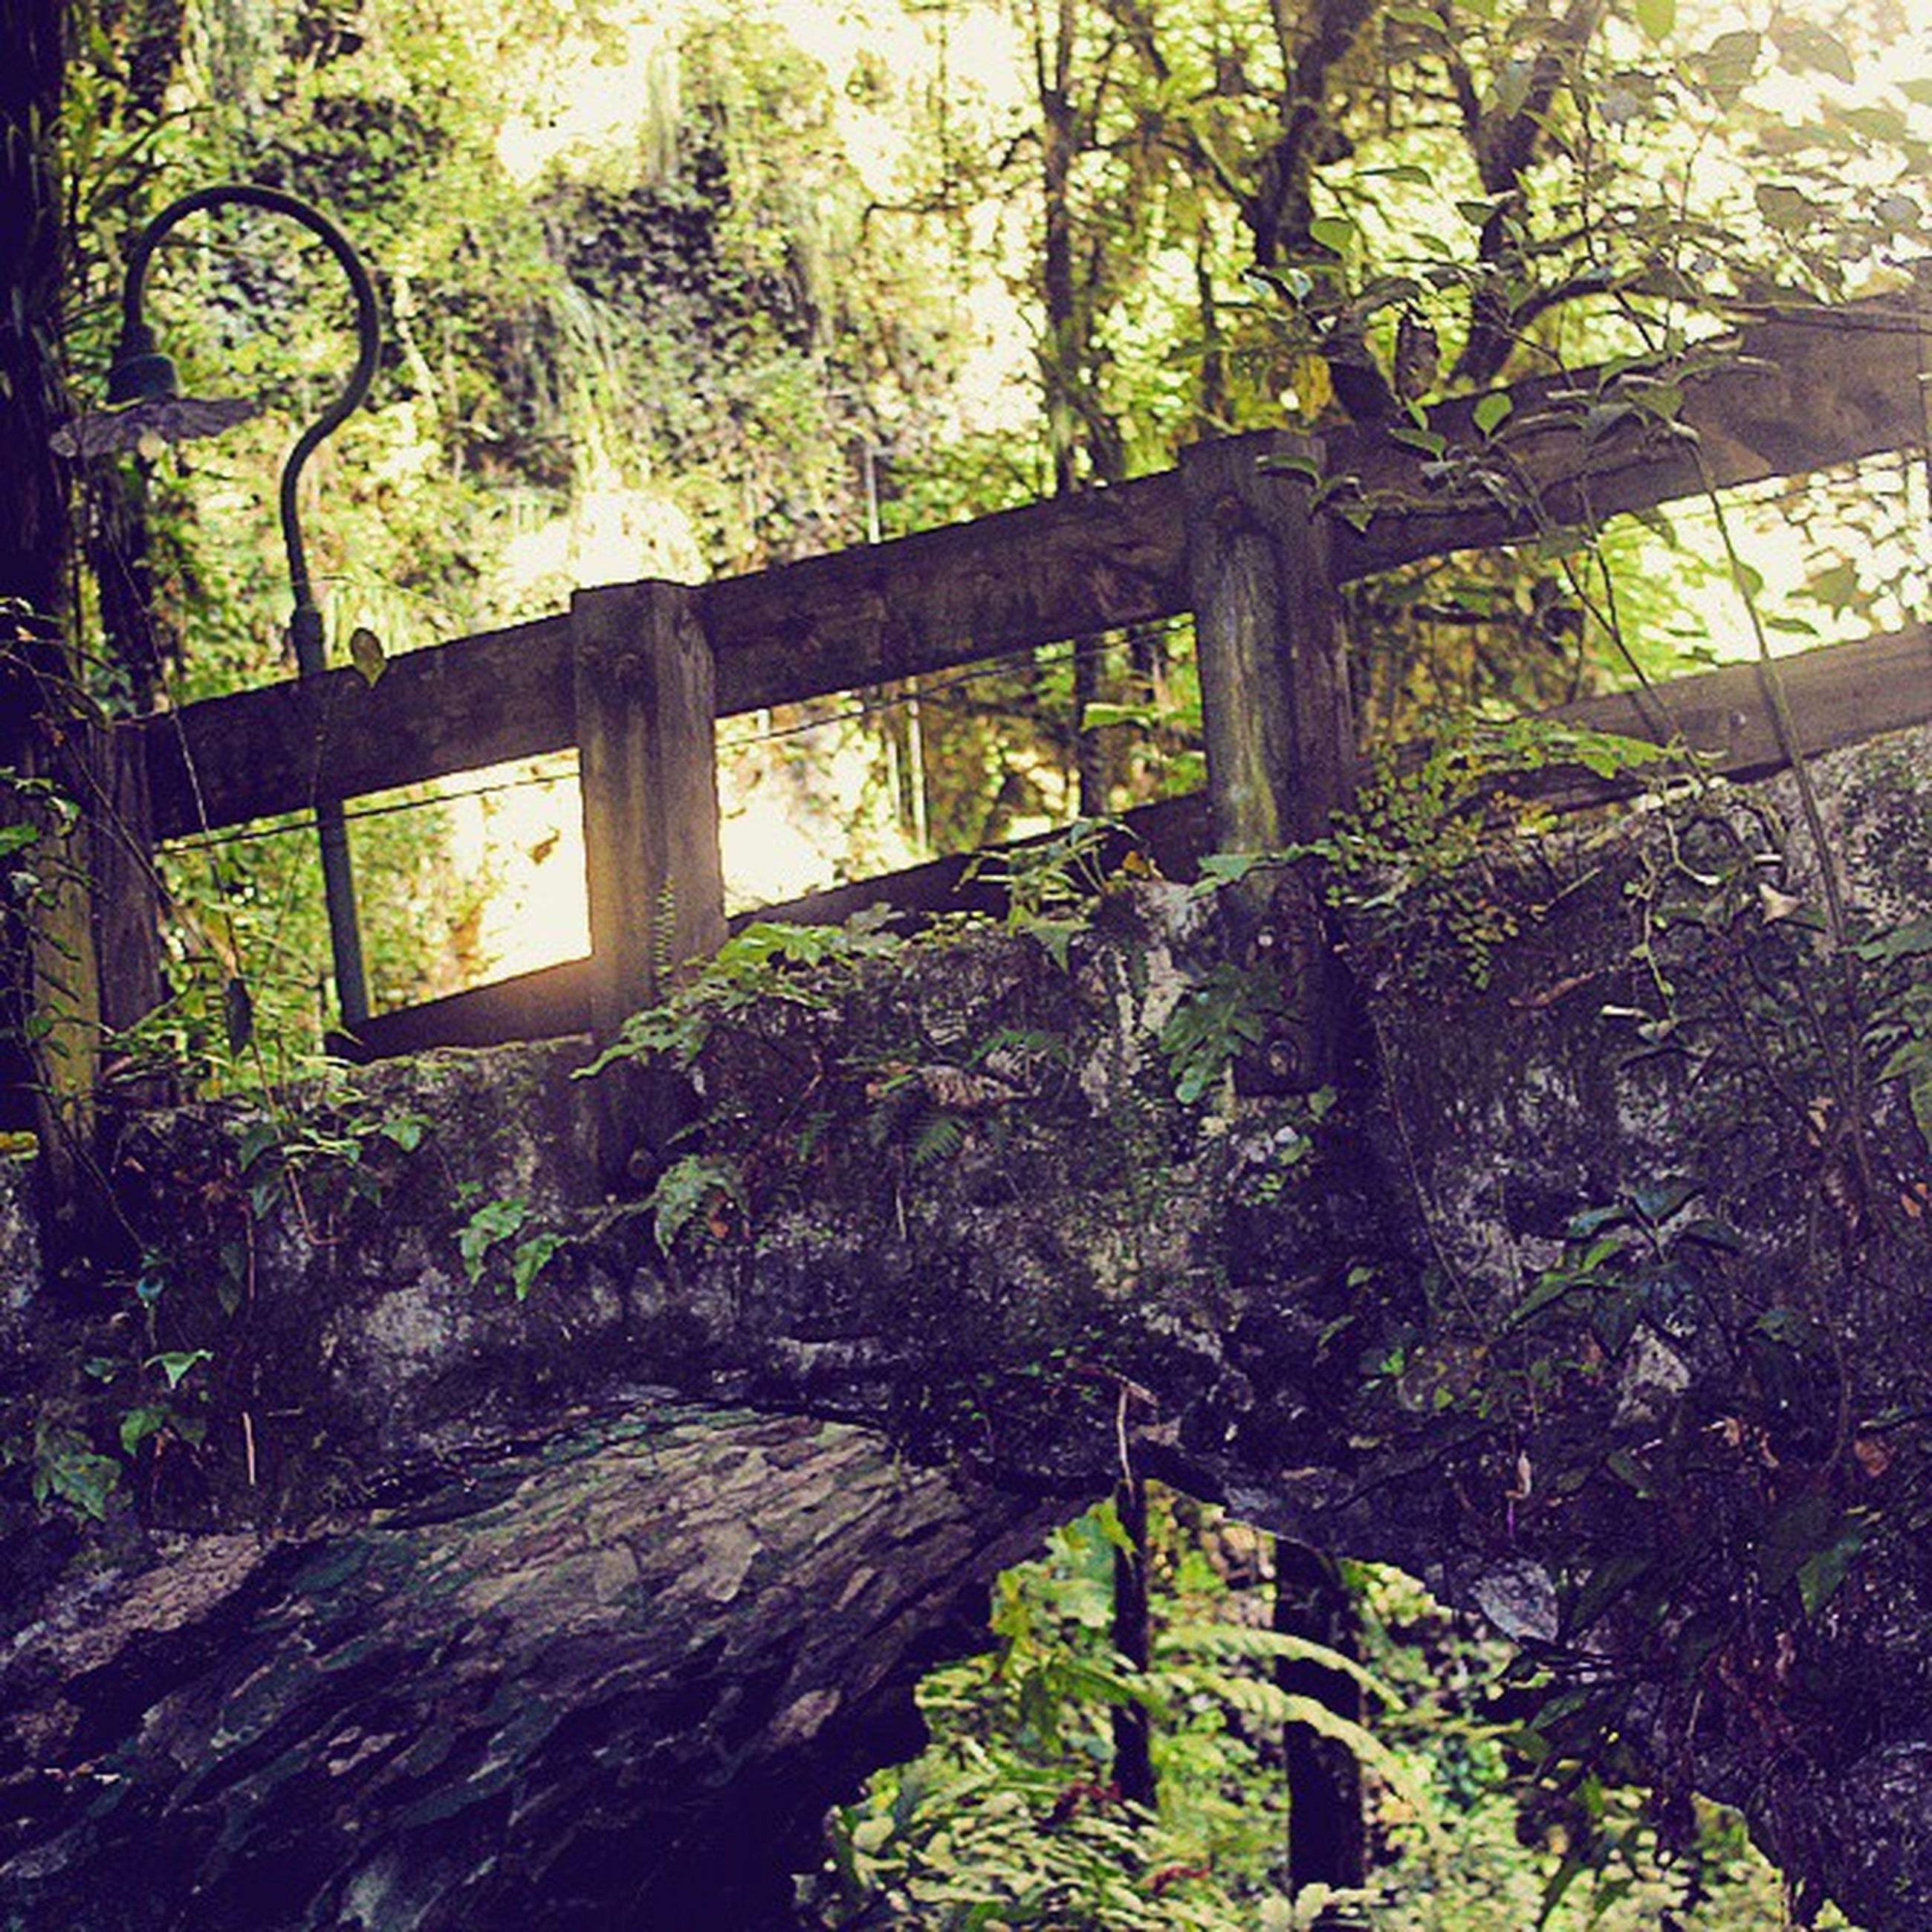 tree, growth, green color, plant, nature, tranquility, day, built structure, wood - material, old, outdoors, forest, no people, moss, park - man made space, sunlight, abandoned, auto post production filter, tree trunk, wall - building feature